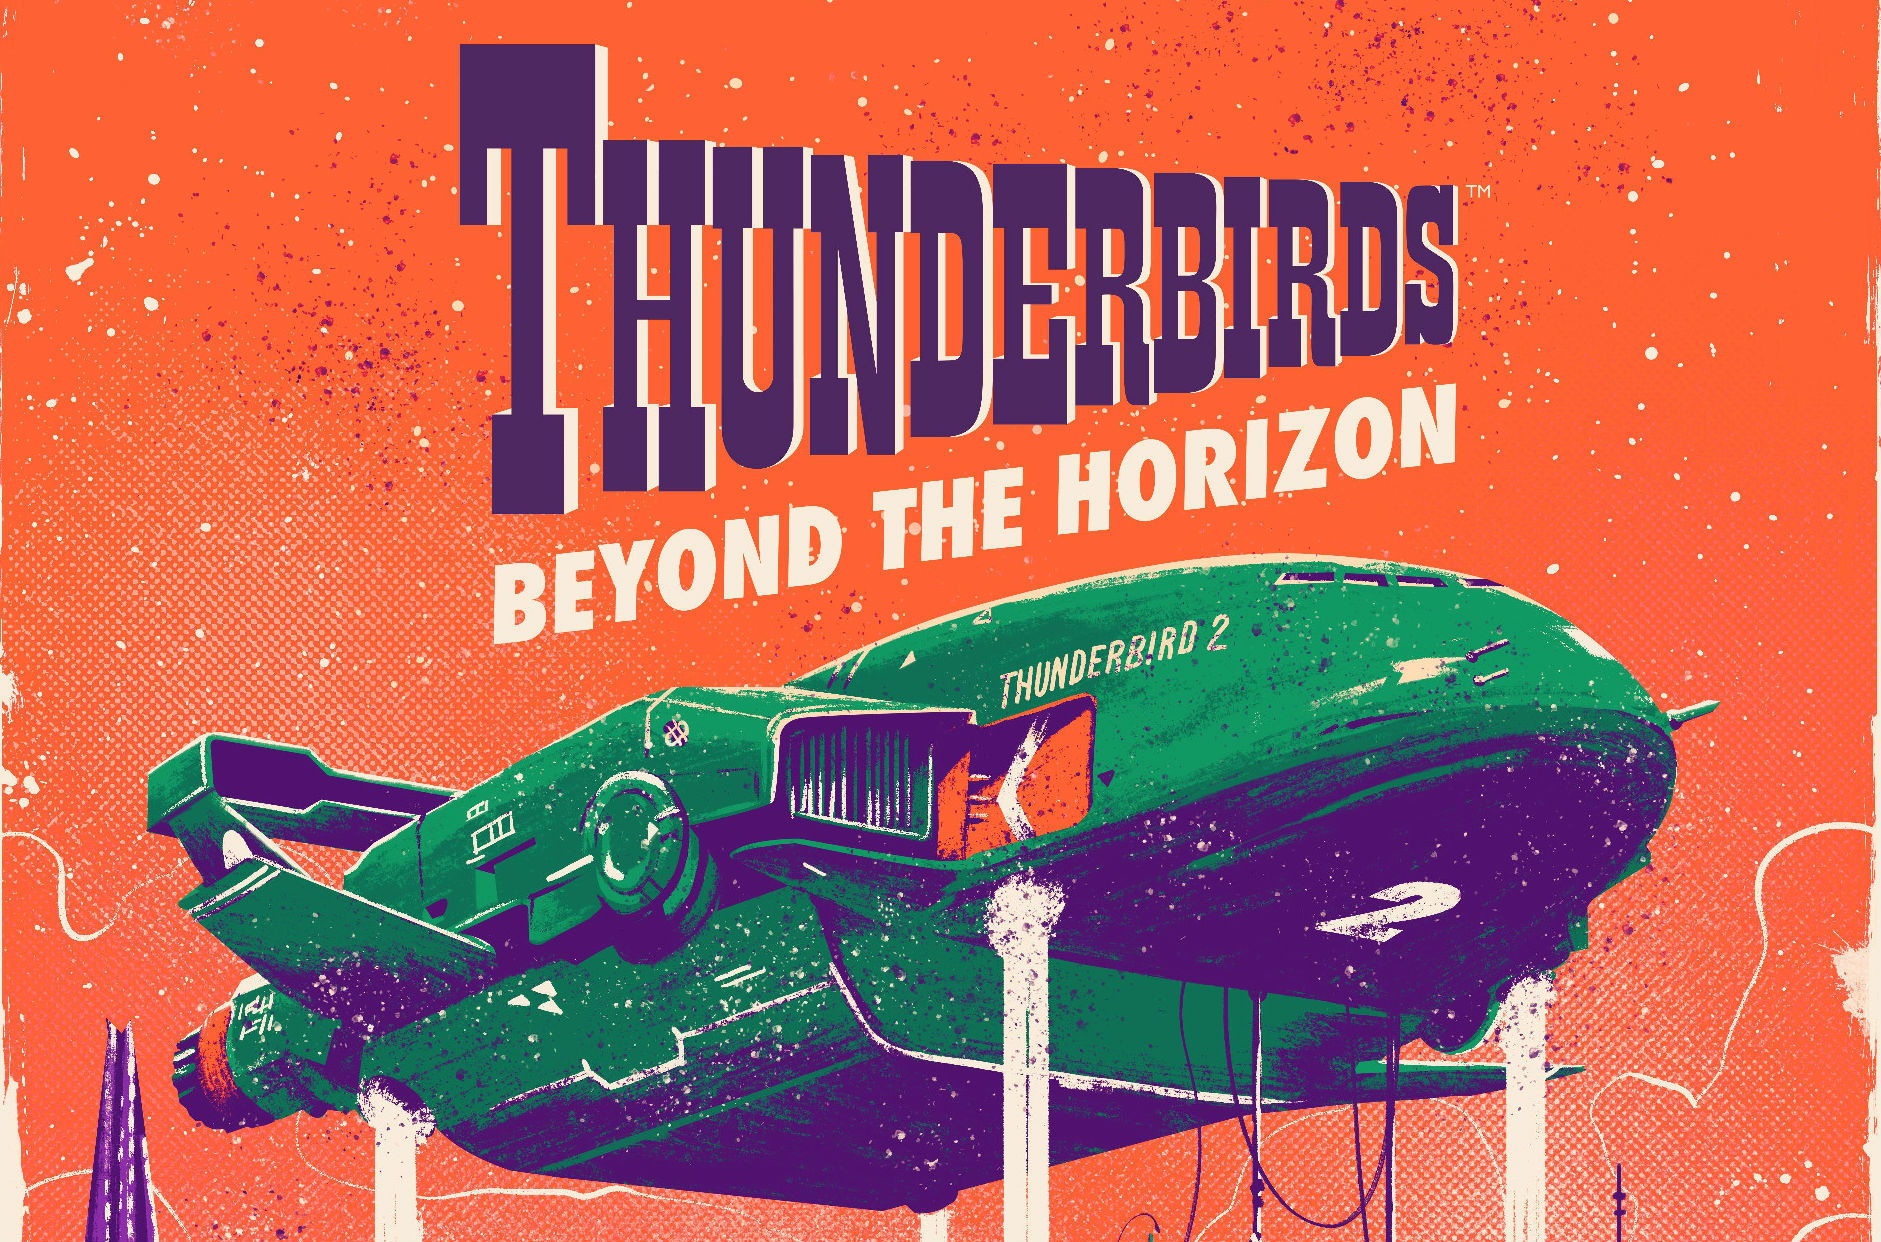 Thunderbirds: Beyond the Horizon